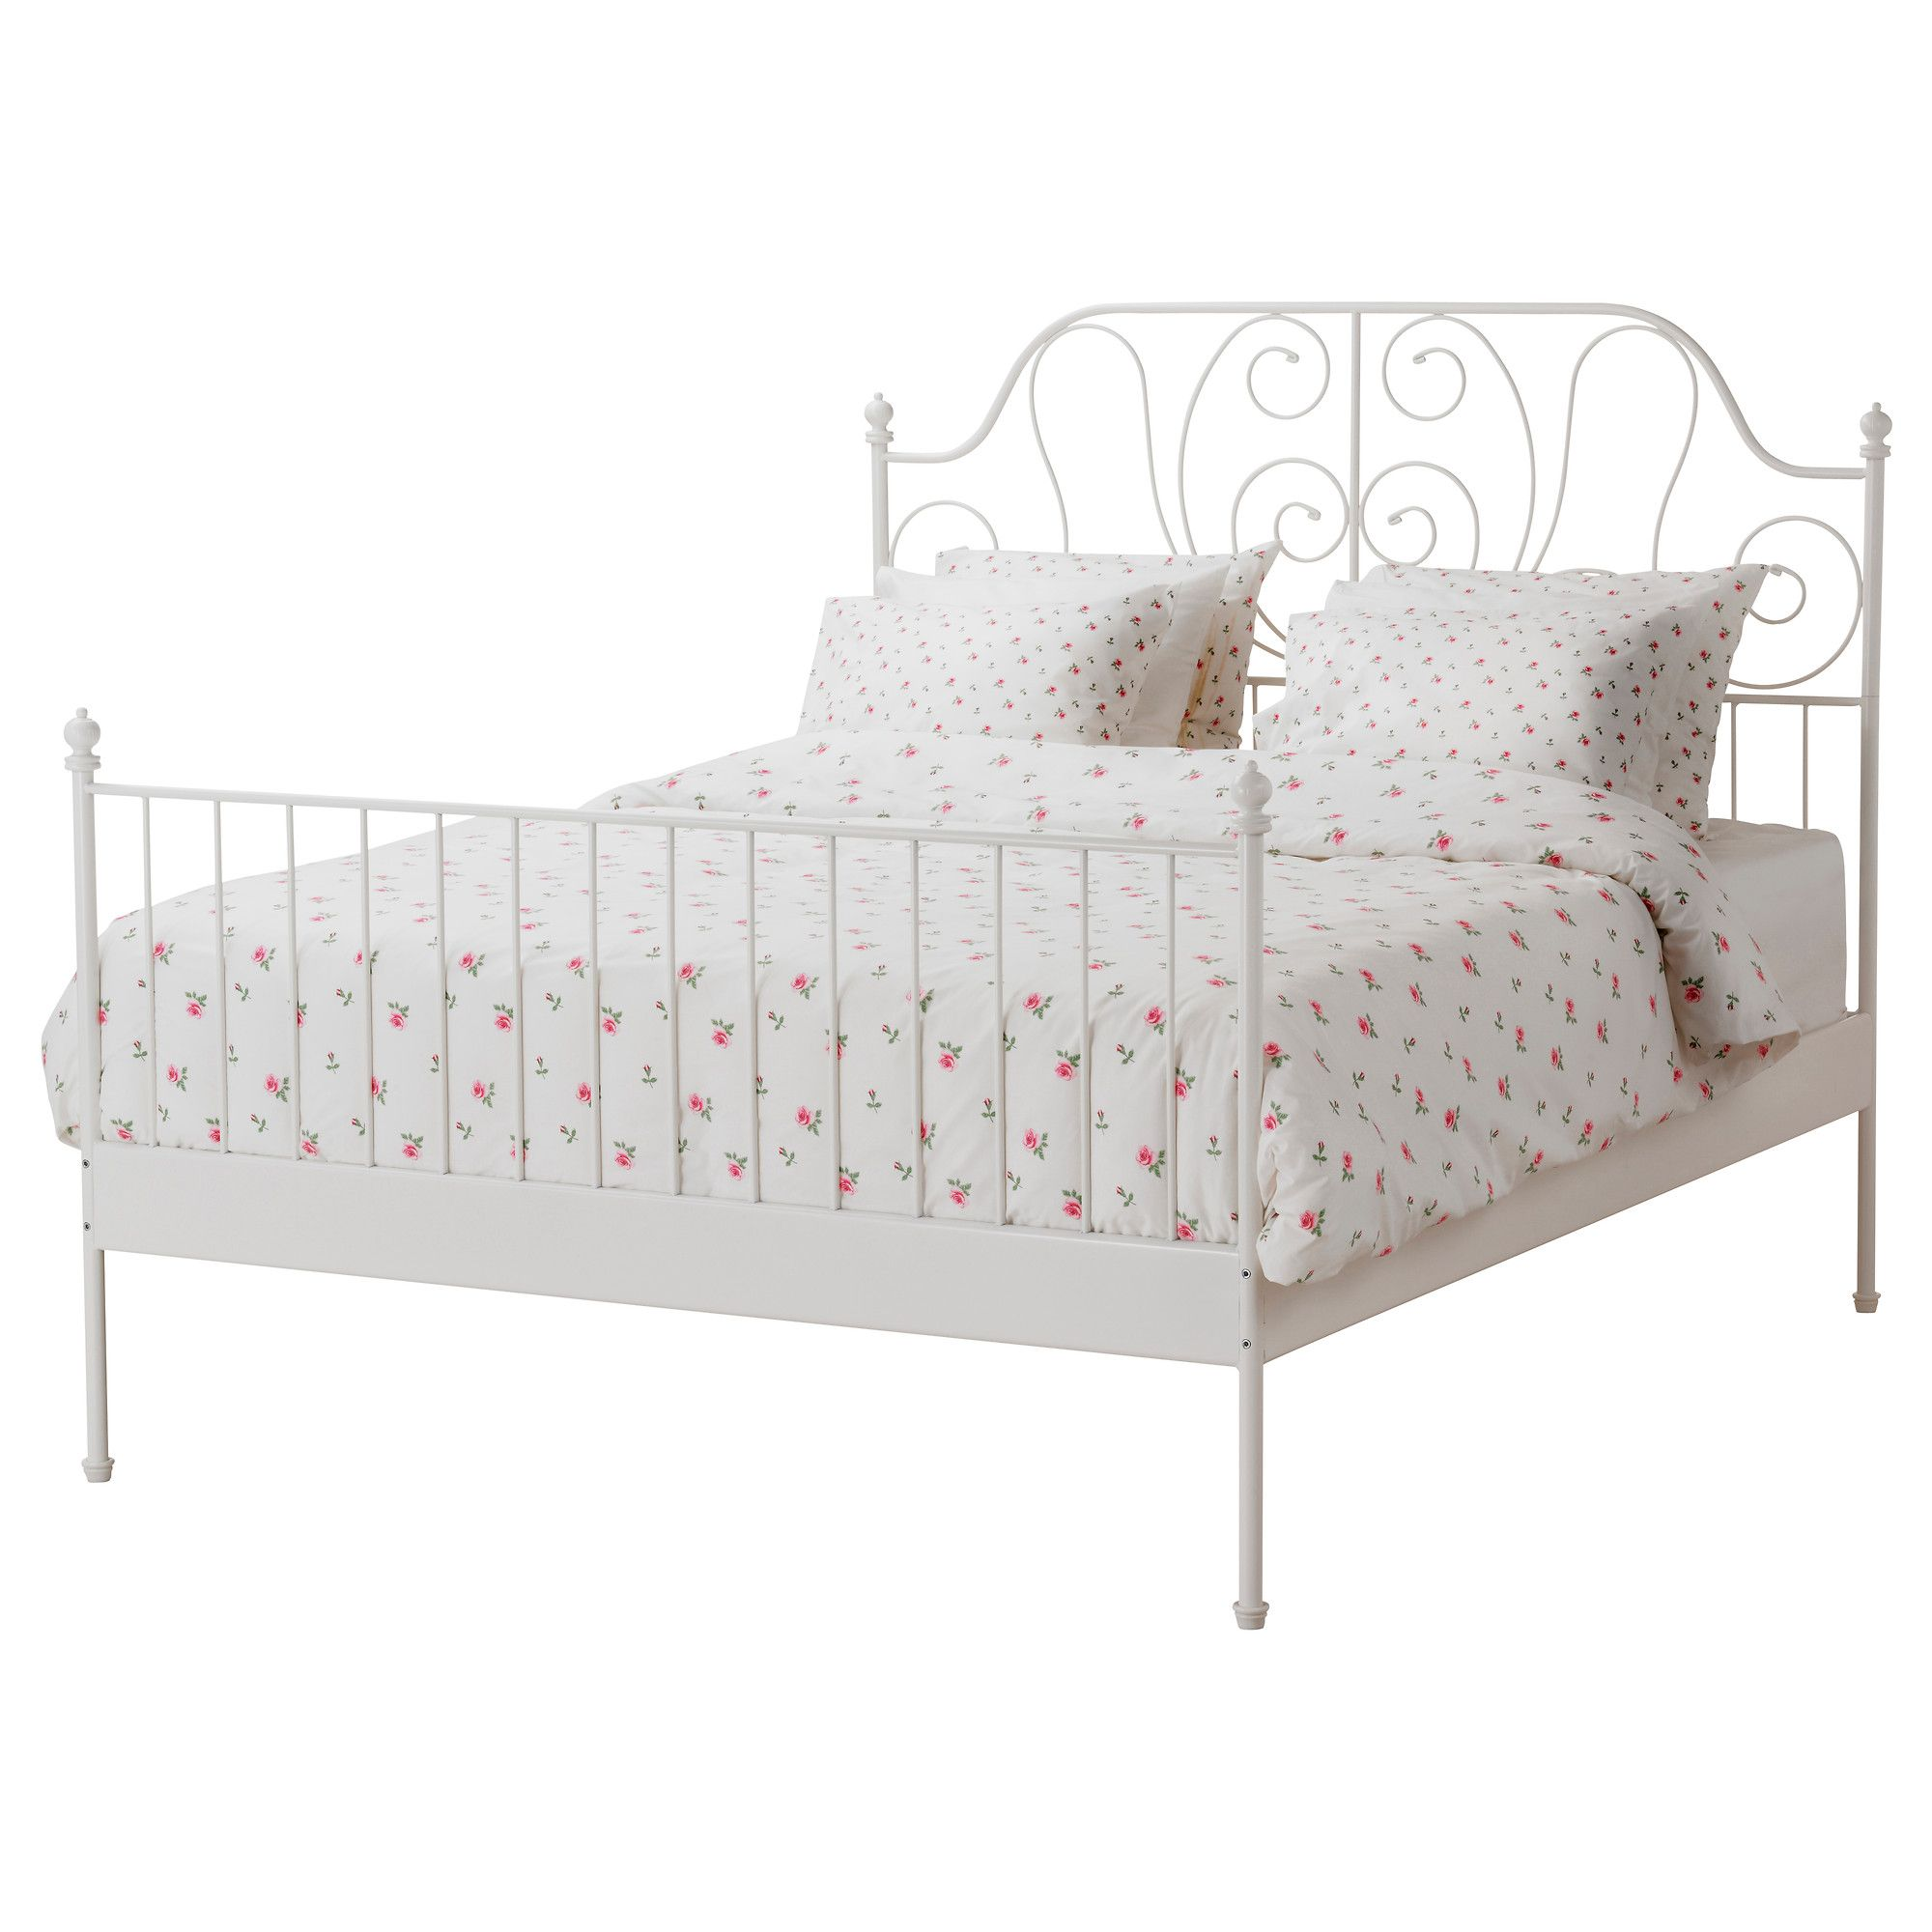 Explore Ikea Bed Frames Antique Iron Beds And More